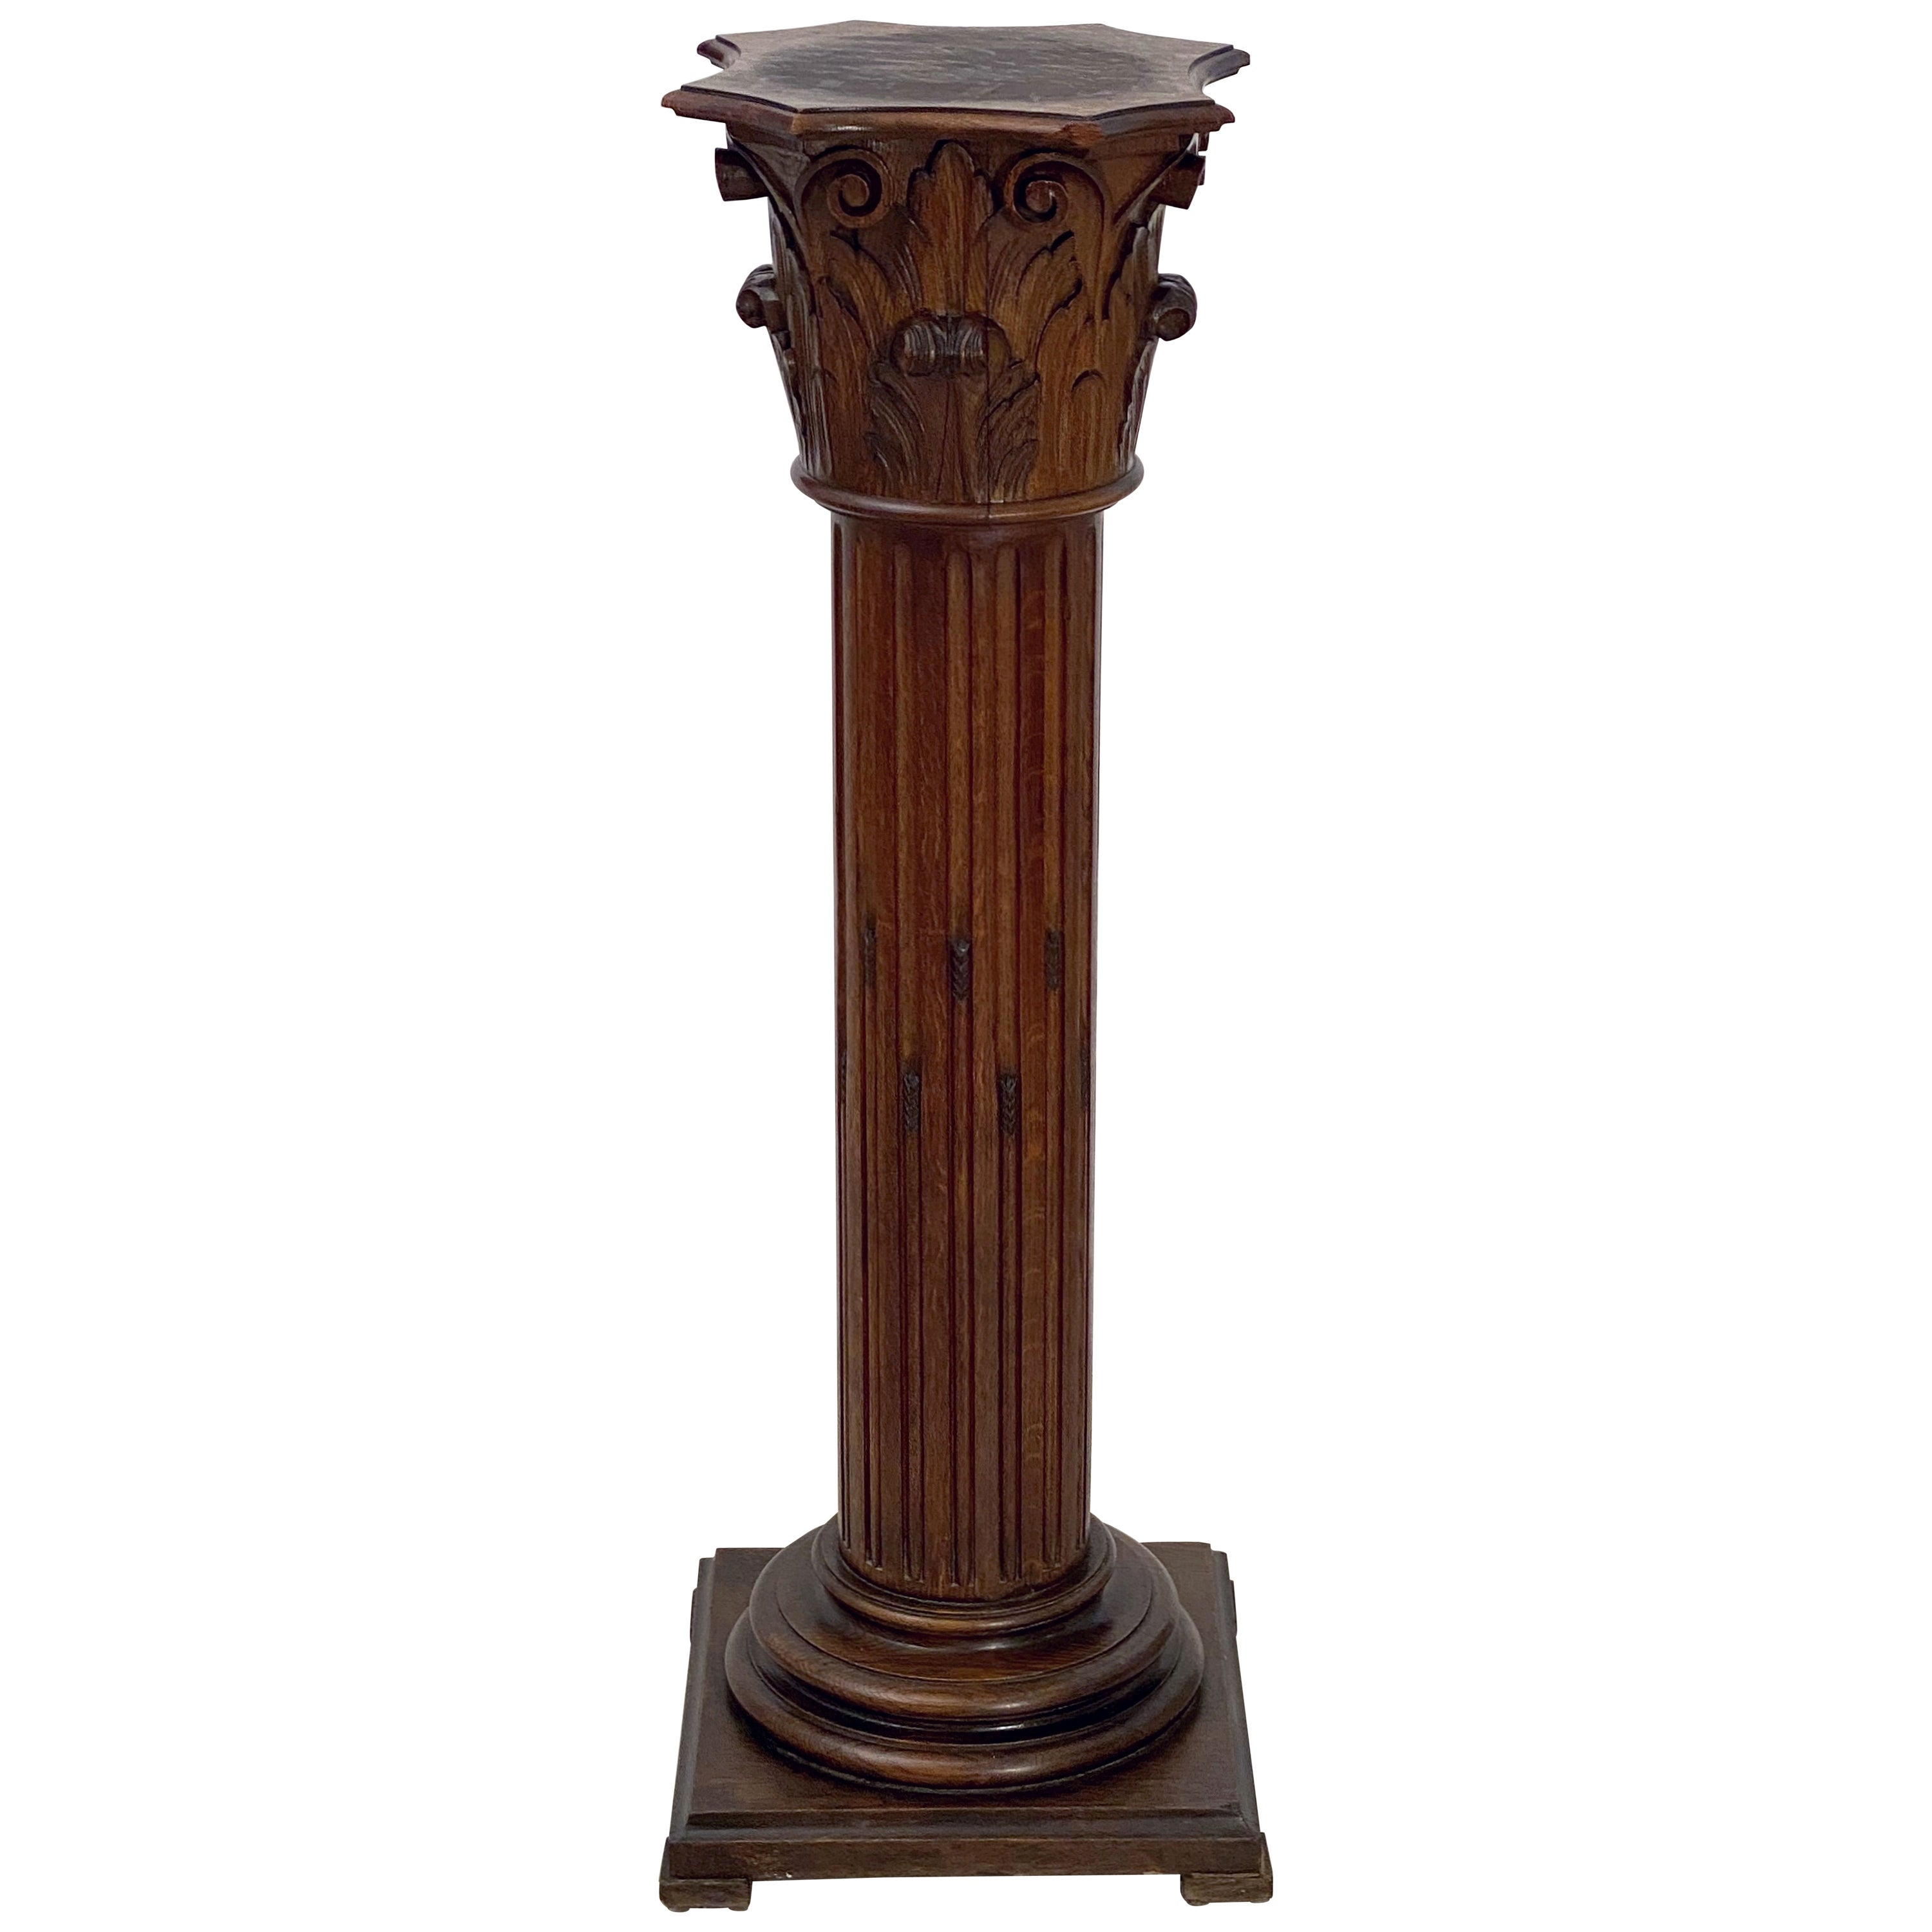 Tall Neoclassical Wooden Column Pedestal Stand or Plinth from France